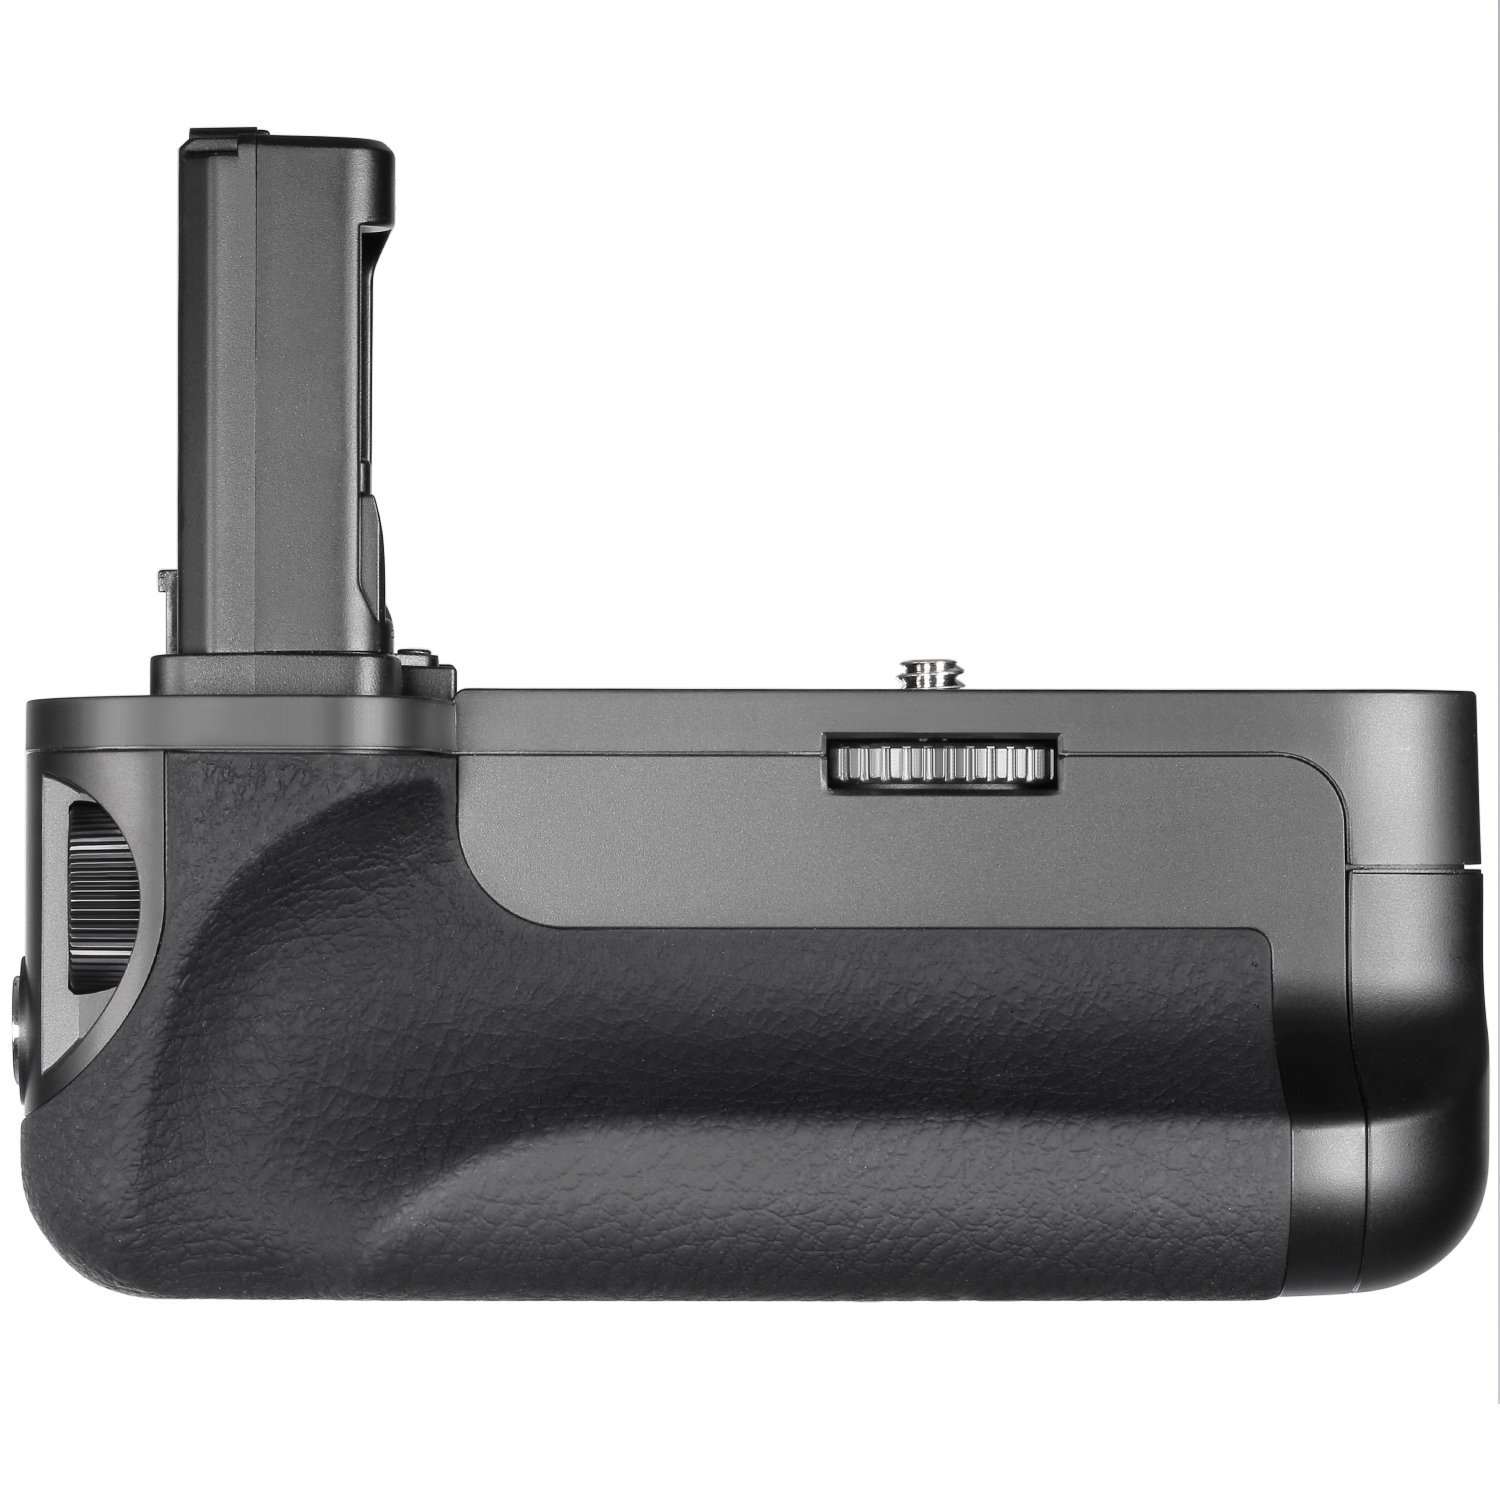 Neewer Vertical Battery Grip (Replacement for VG-C1EM) for Sony Alpha A7 A7R A7S DSLR Cameras Compatible with NP-FW50 Battery (Battery Not Included)